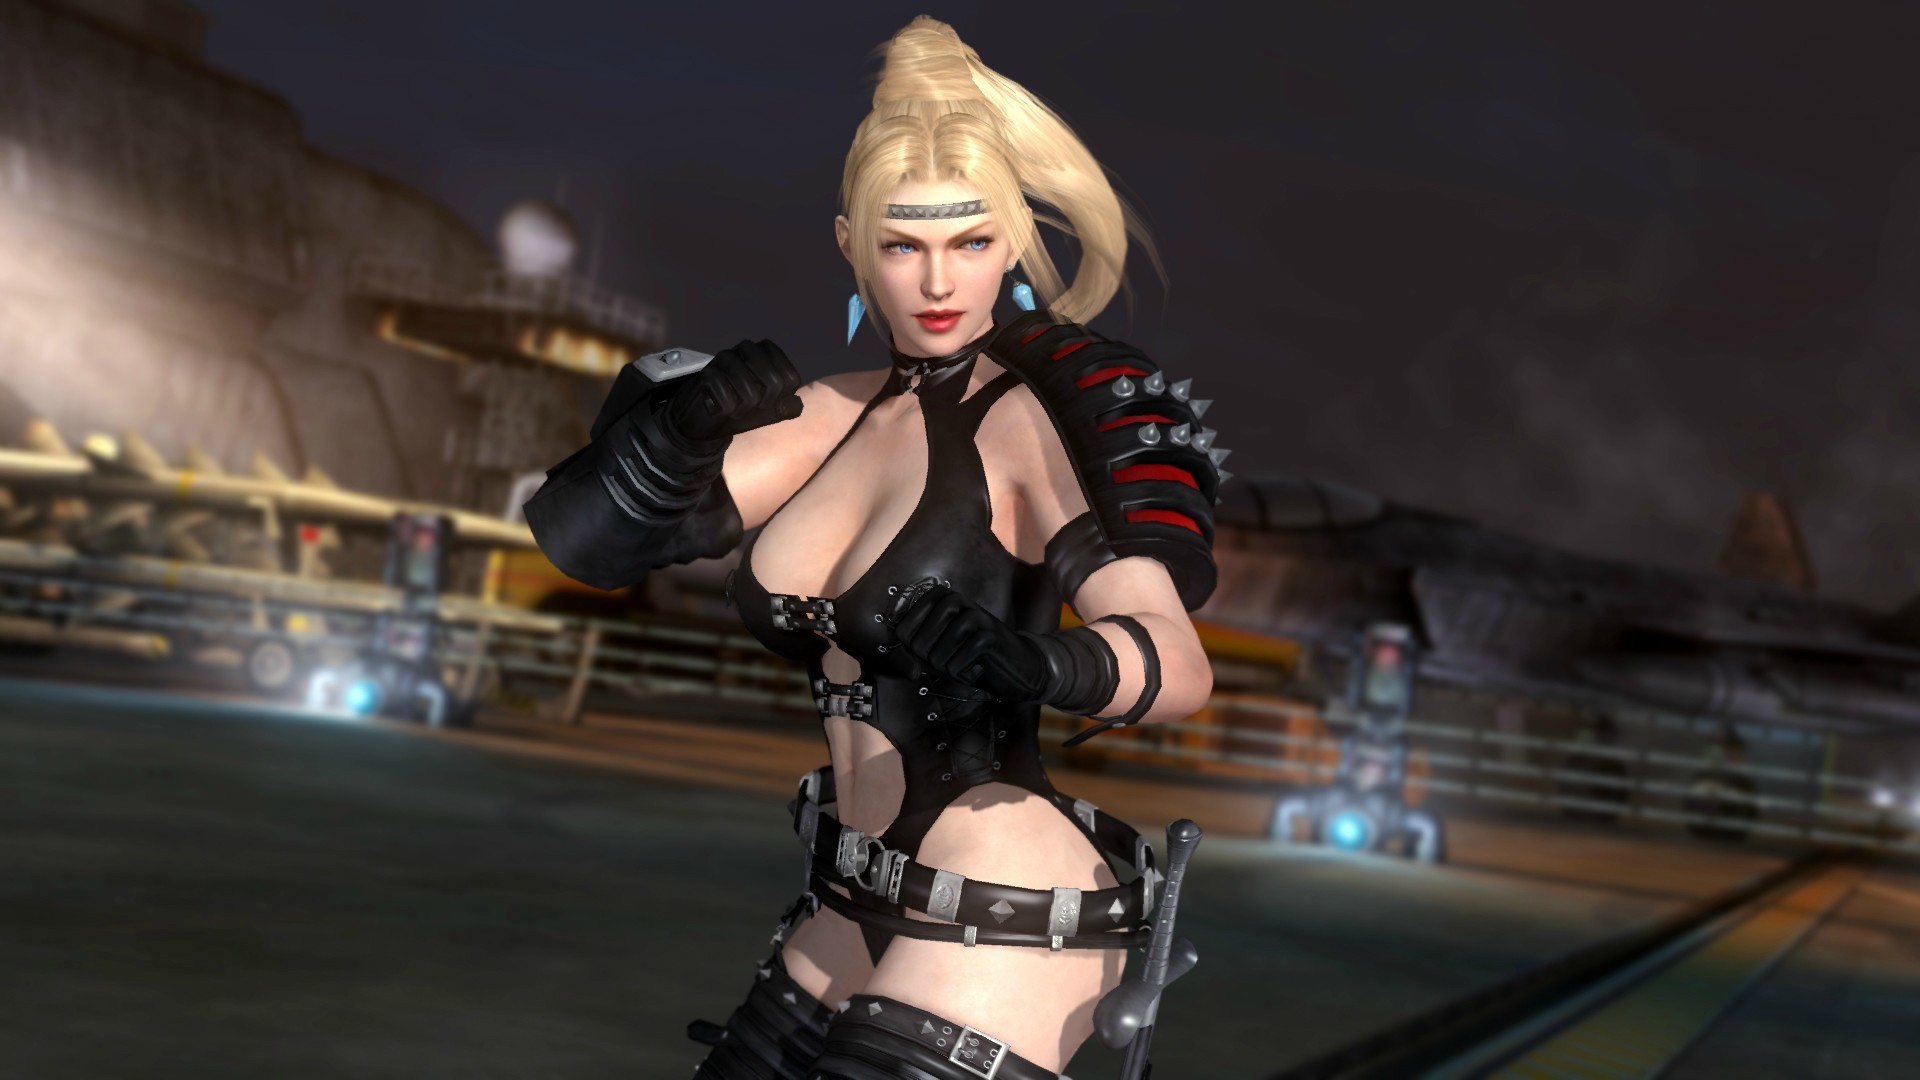 1920x1080 ... for Dead or Alive 5 Ultimate. Rachel now joins Momiji from the Ninja  Gaiden series and returning fan favorite character Leon, along with 2 new  stages, ...